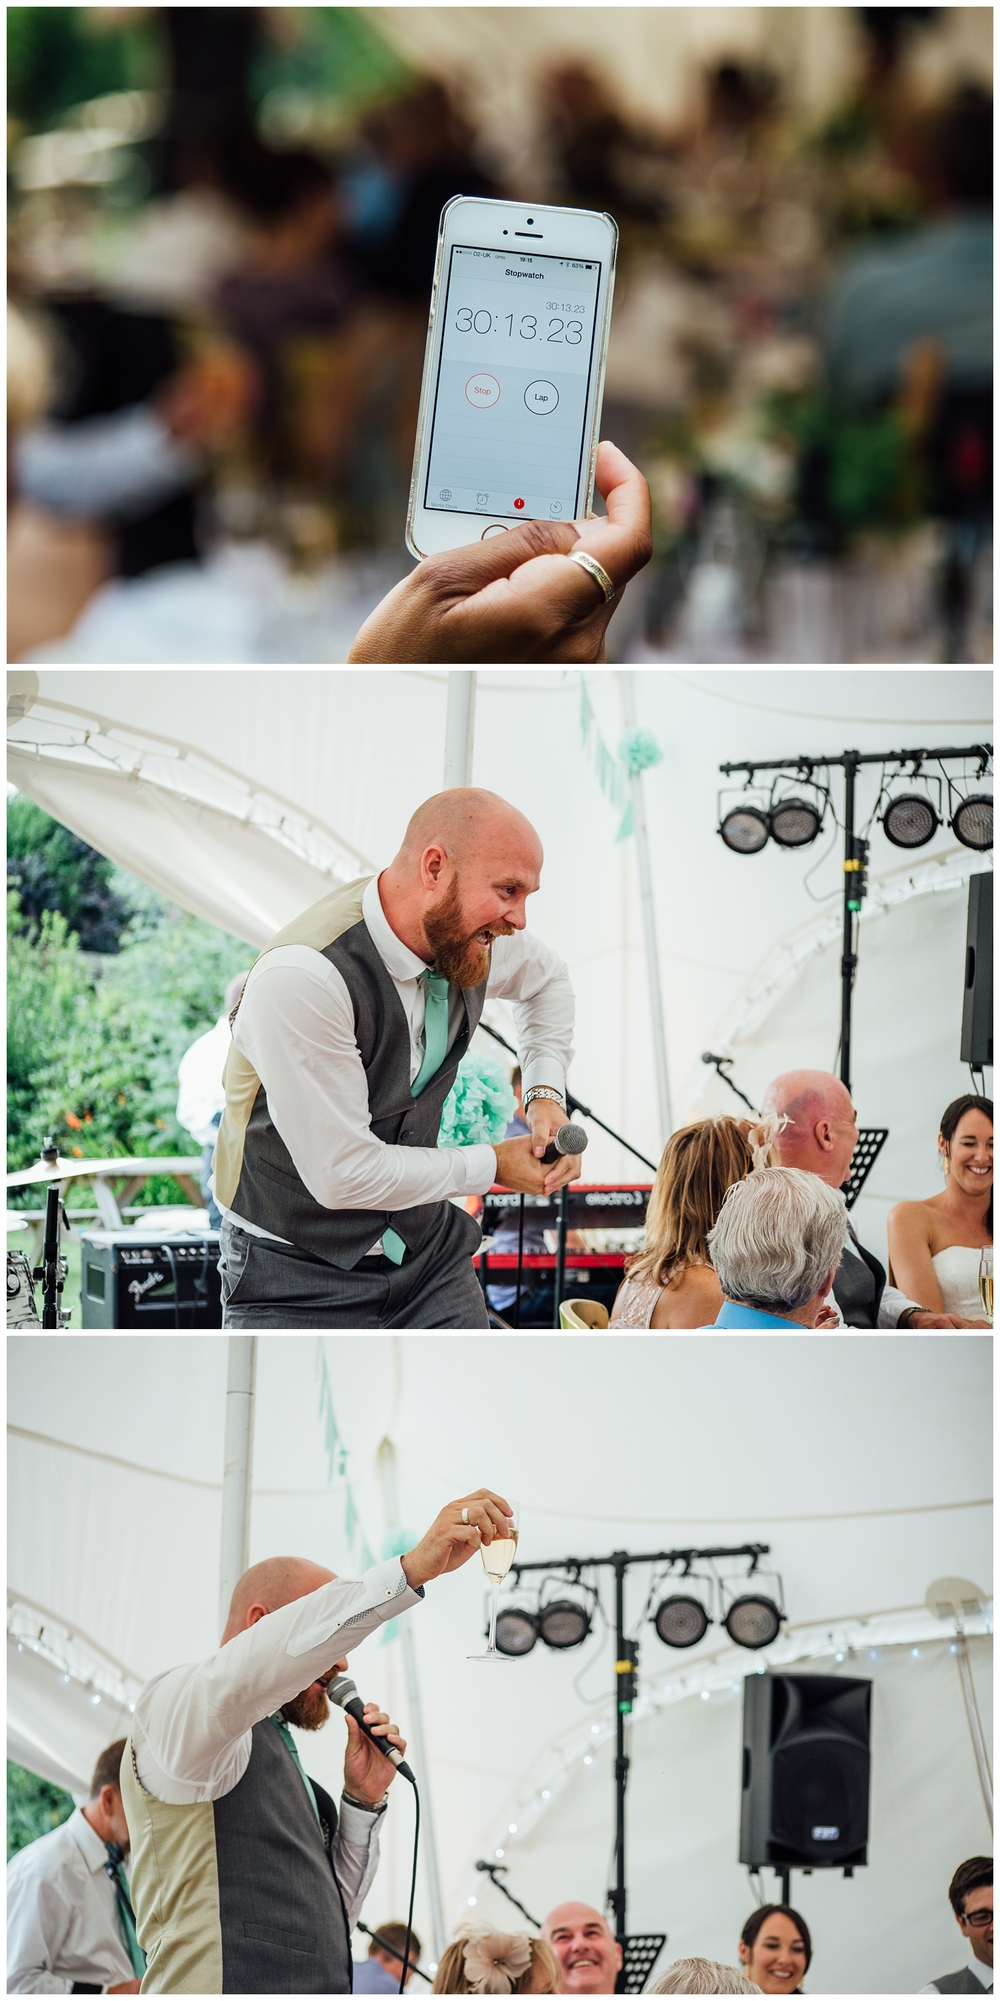 Nikki_Cooper_Photography_Lucy&Scott_Wedding_Photos_The_Crab_Tree_Pub_Horsham_1122.jpg